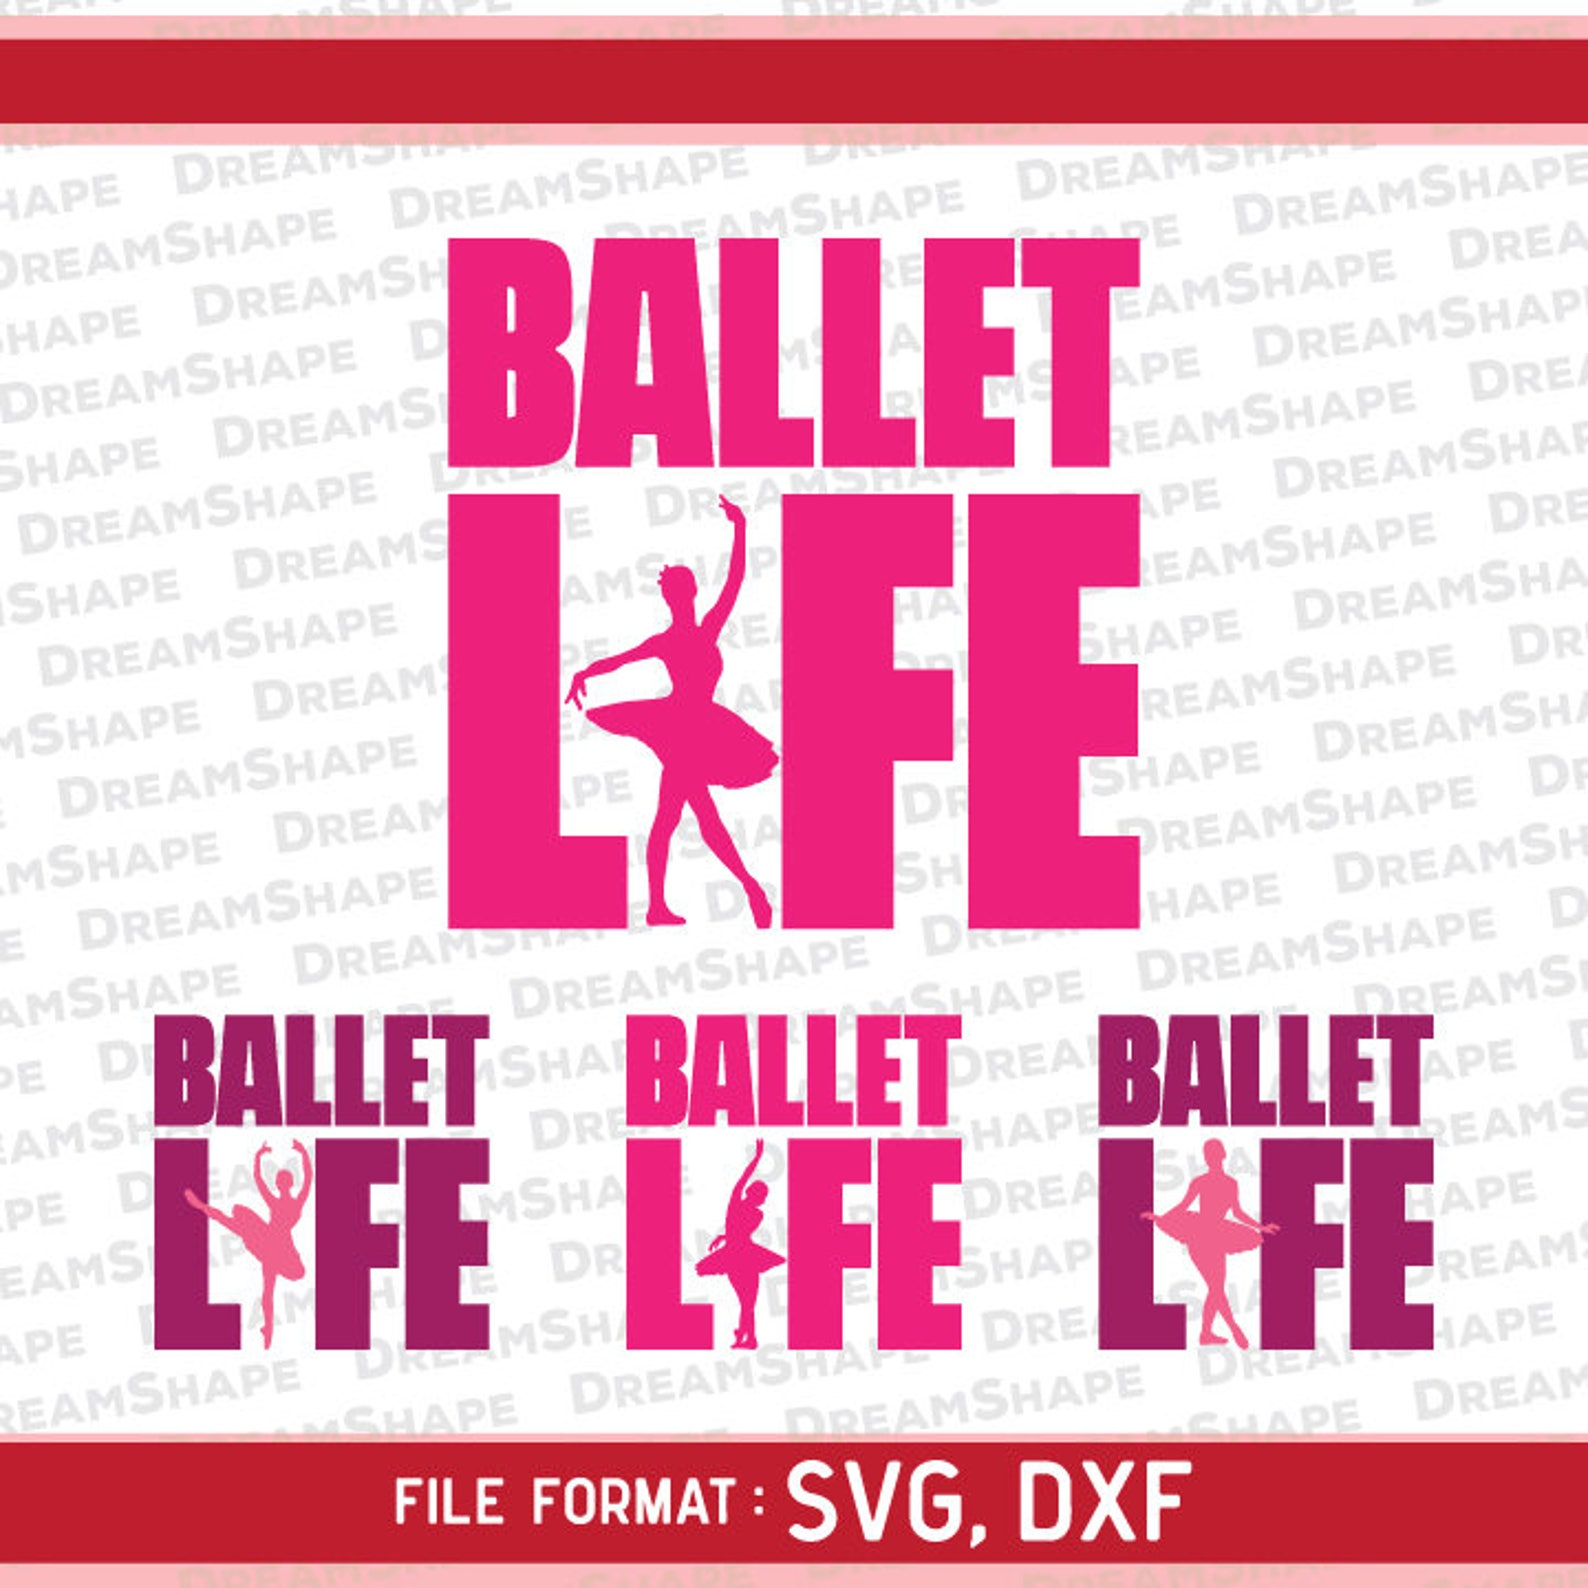 ballet life svg files, ballet life dxf cutting files, ballerina svg file, ballet life svg dxf file, ballet life svg cutting inst